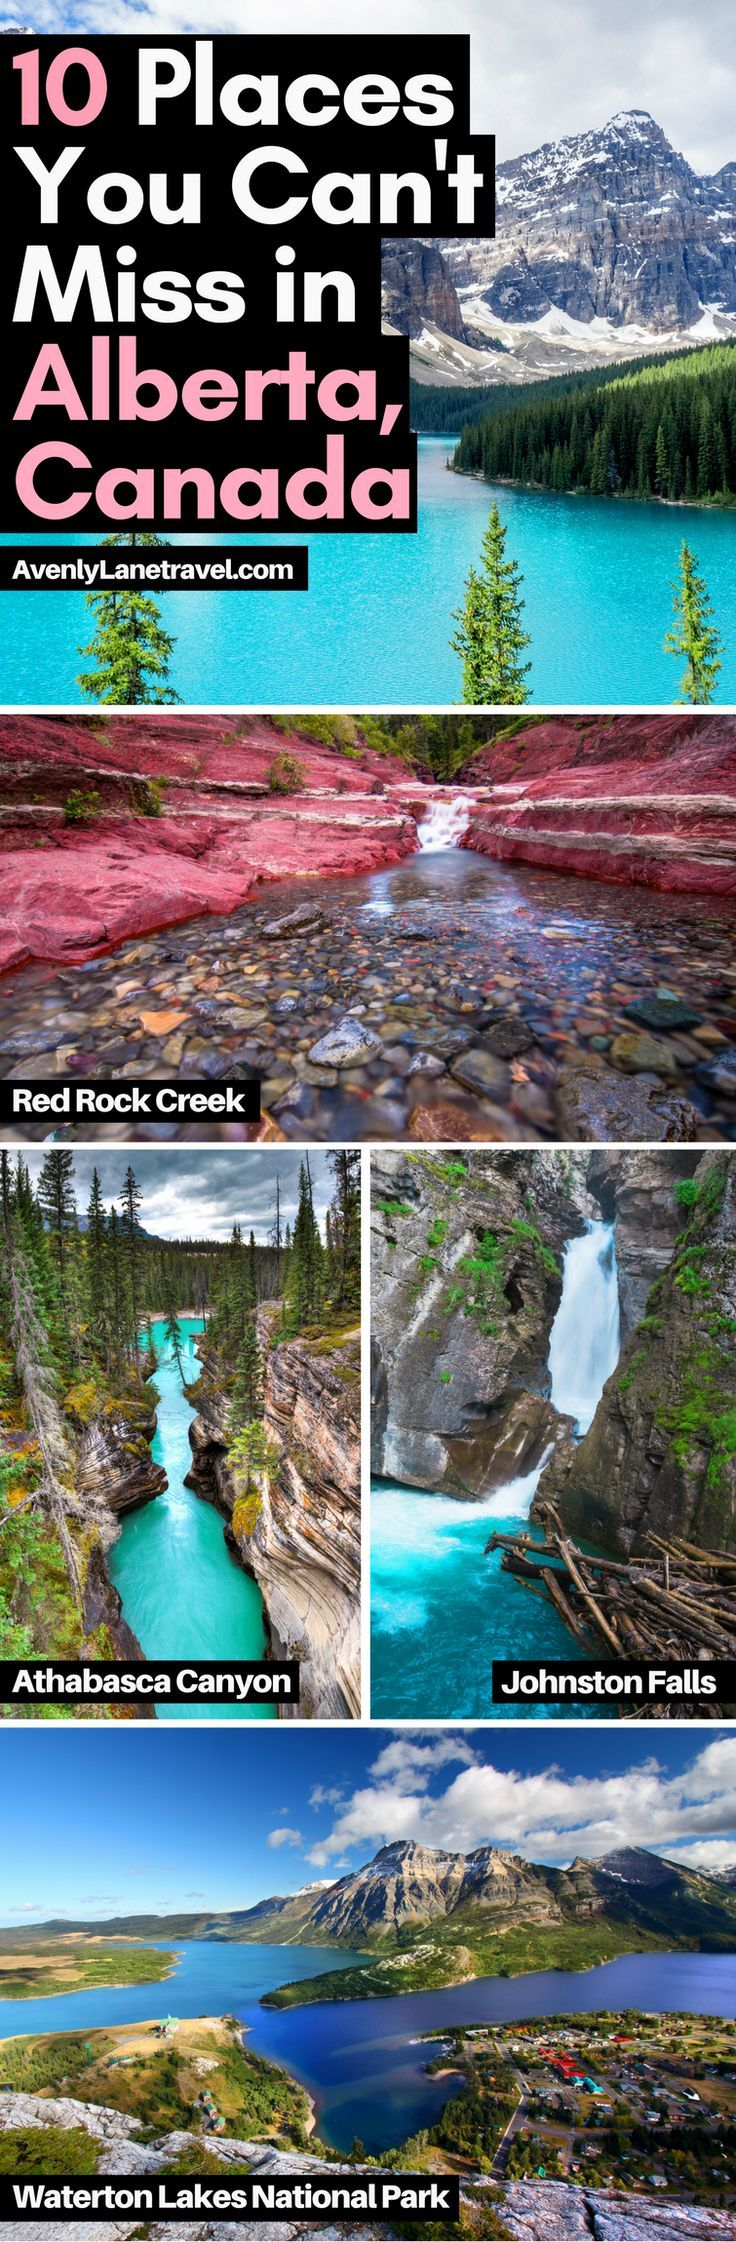 10 Amazing Things To See And Do In Alberta, Canada!  It is the perfect destination for the outdoorsy person.  There is so much to see there!  Including visiting the Columbia Icefields, Banff National Park, Lake Abraham, Lake Louise, Peyto Lake and much more! #avenlylanetravel #canada #travel